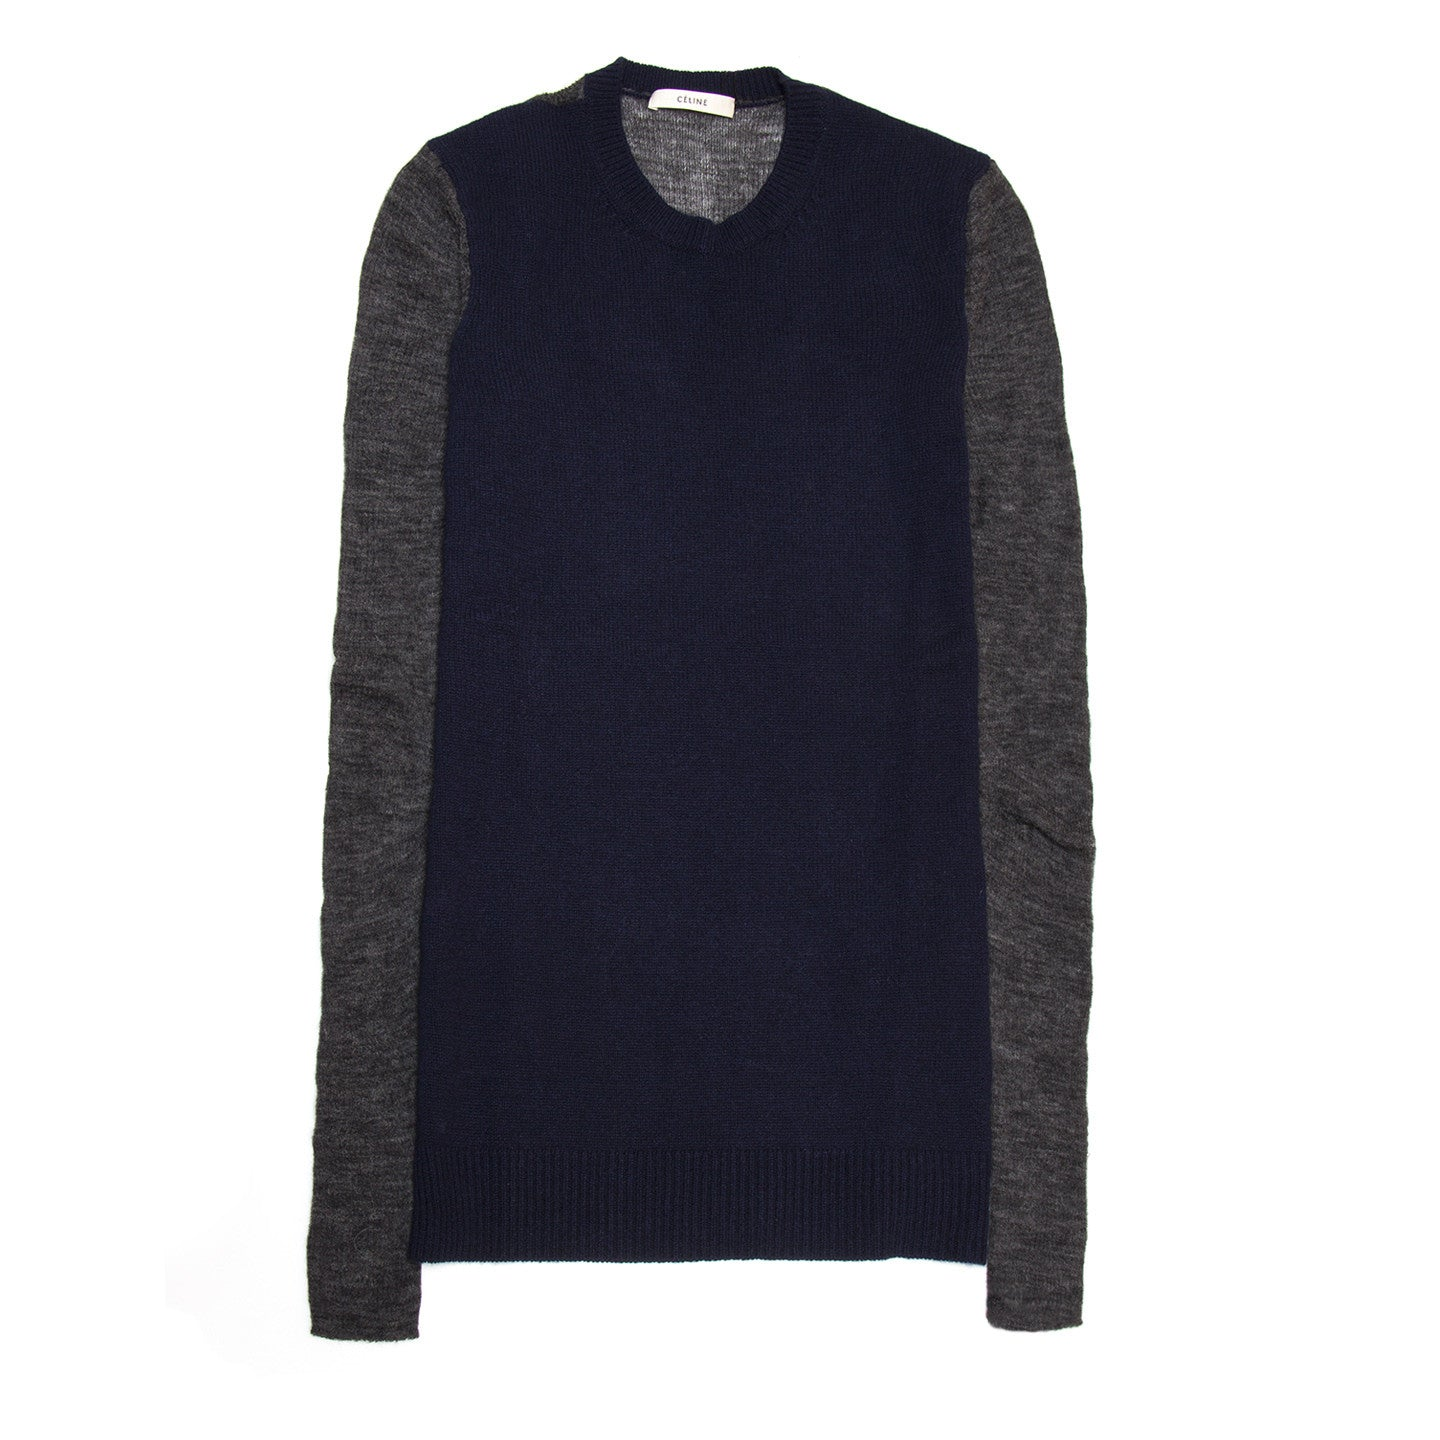 Find an authentic preowned Celine Navy & Grey Cashmere Sweater, size L at BunnyJack, where a portion of every sale goes to charity.